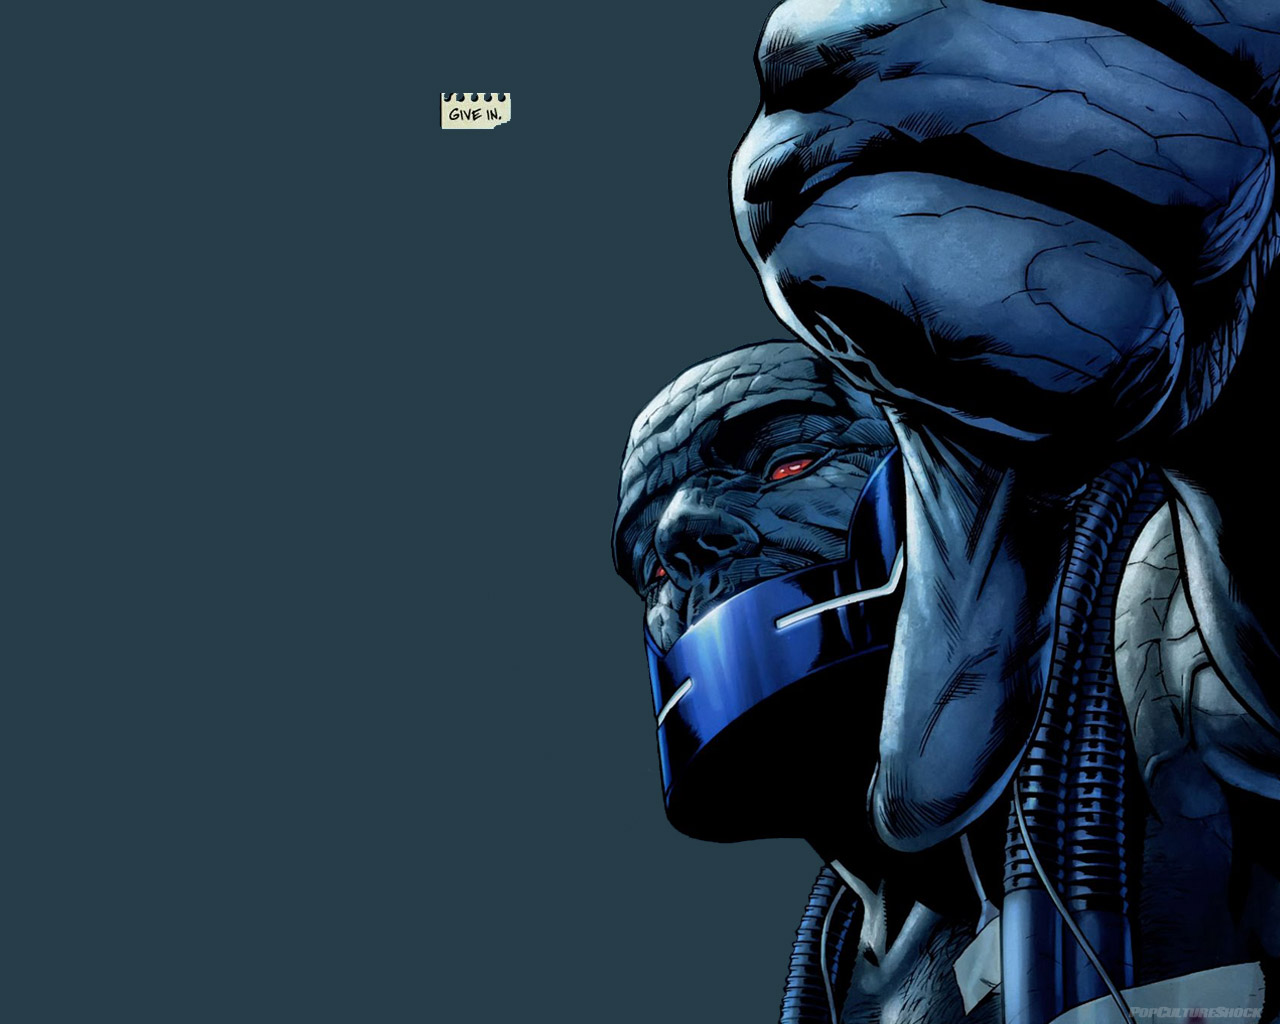 28 Darkseid 4K Ultra HD Backgrounds GsFDcY Graphics 1280x1024